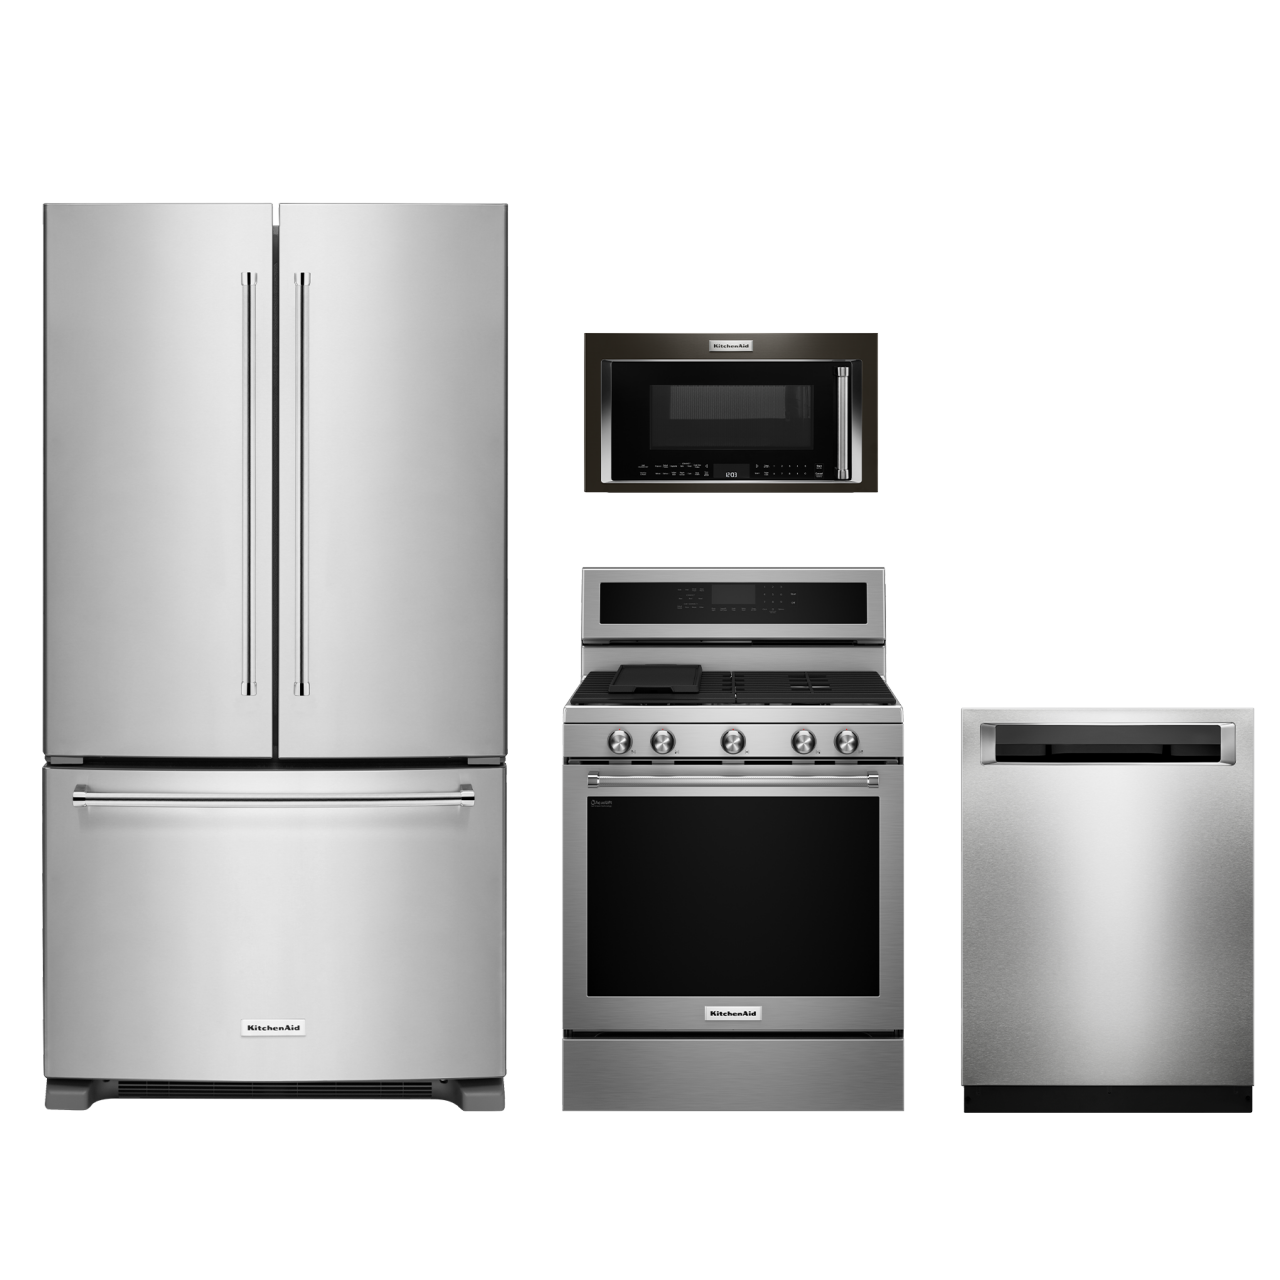 Kitchenaid 4 Piece Kitchen Appliance Package With Electric: KitchenAid® 4 Piece Kitchen Package-Stainless Steel